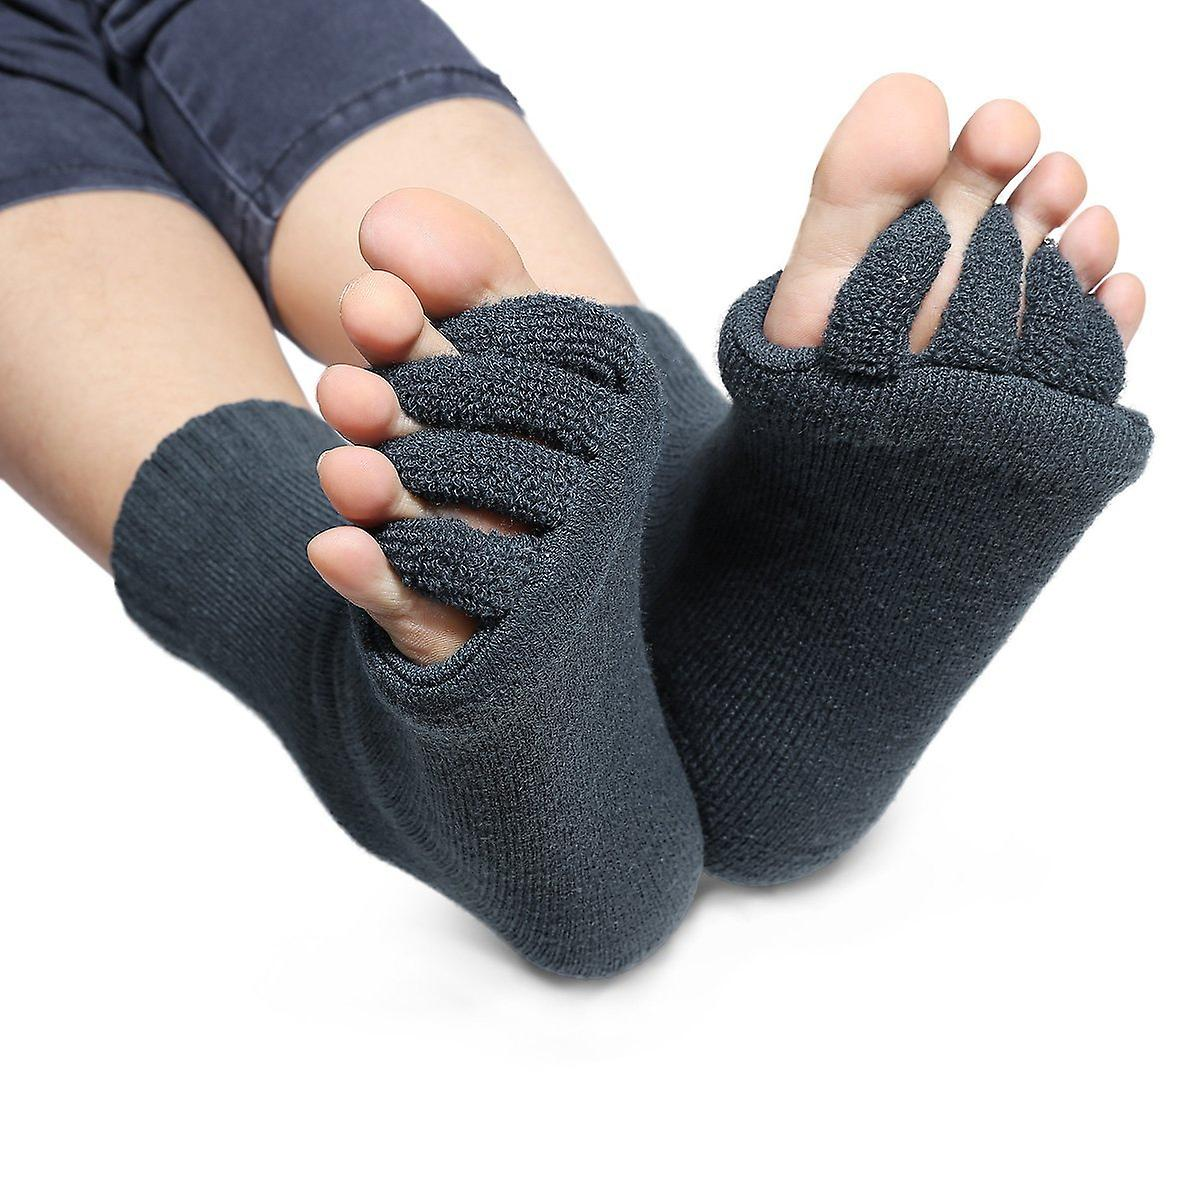 Toe Spreads Socks Pedicure Foot Massage Wellness Socks - Size: 34-43 Colour Grey